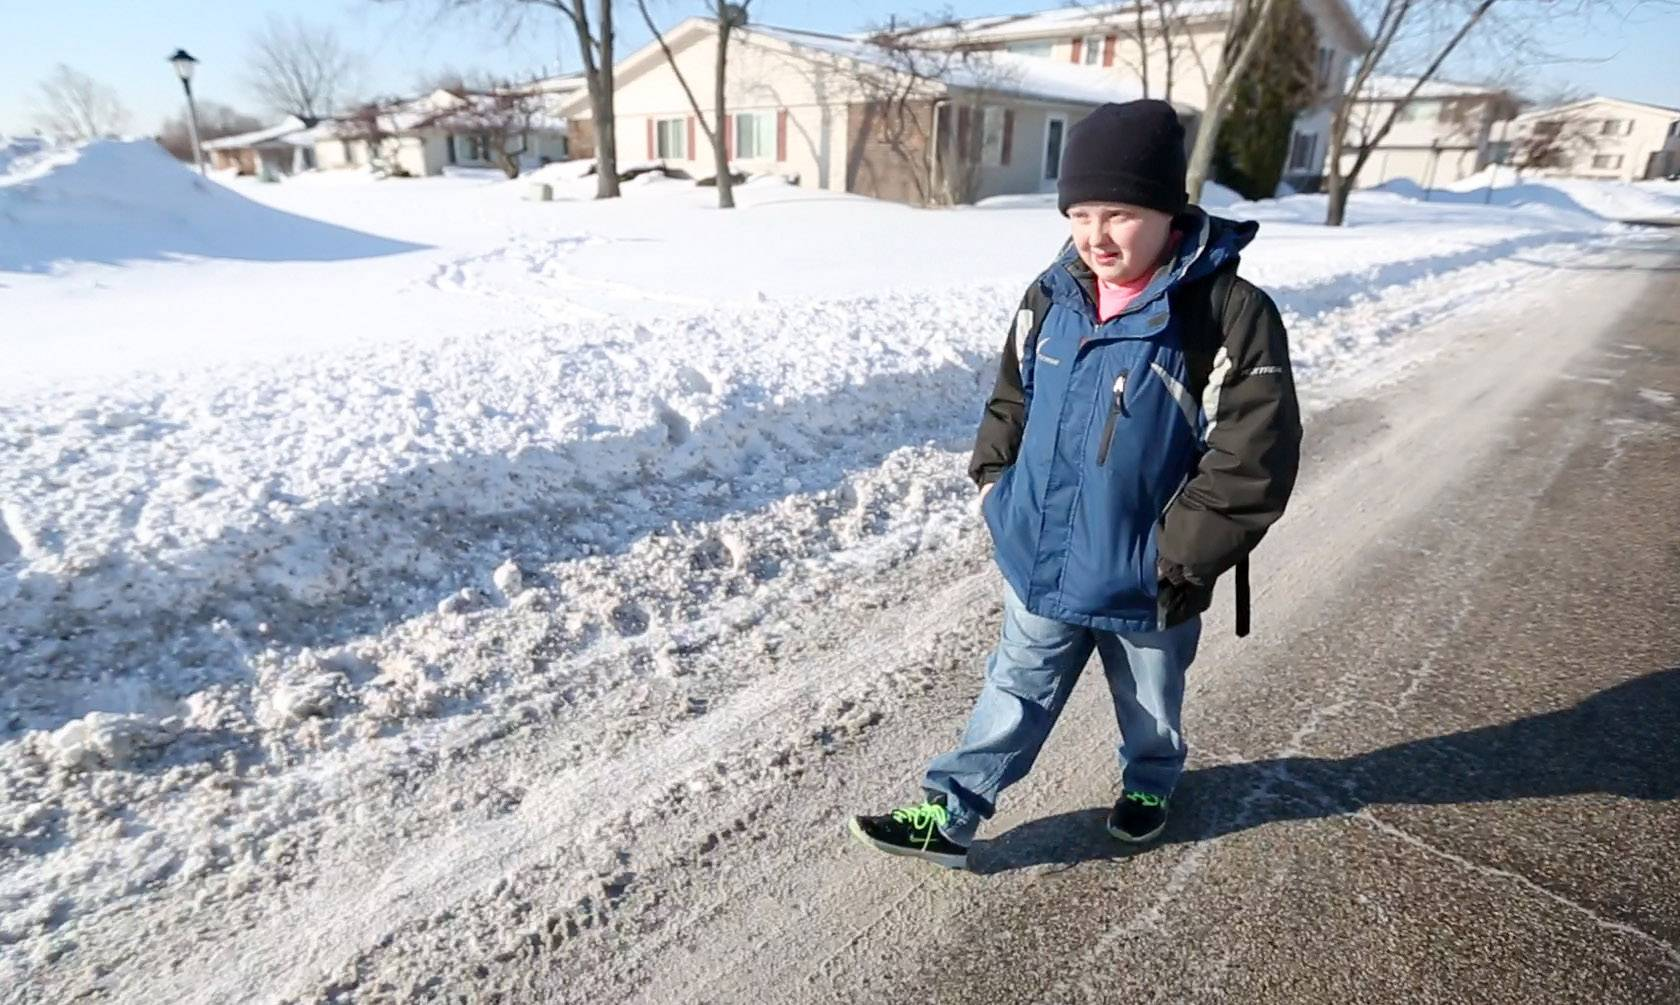 Matthew Sim, 12, has been walking to Enders-Salk Elementary School on Barcliffe Lane because sidewalks are impassable in his Schaumburg neighborhood.